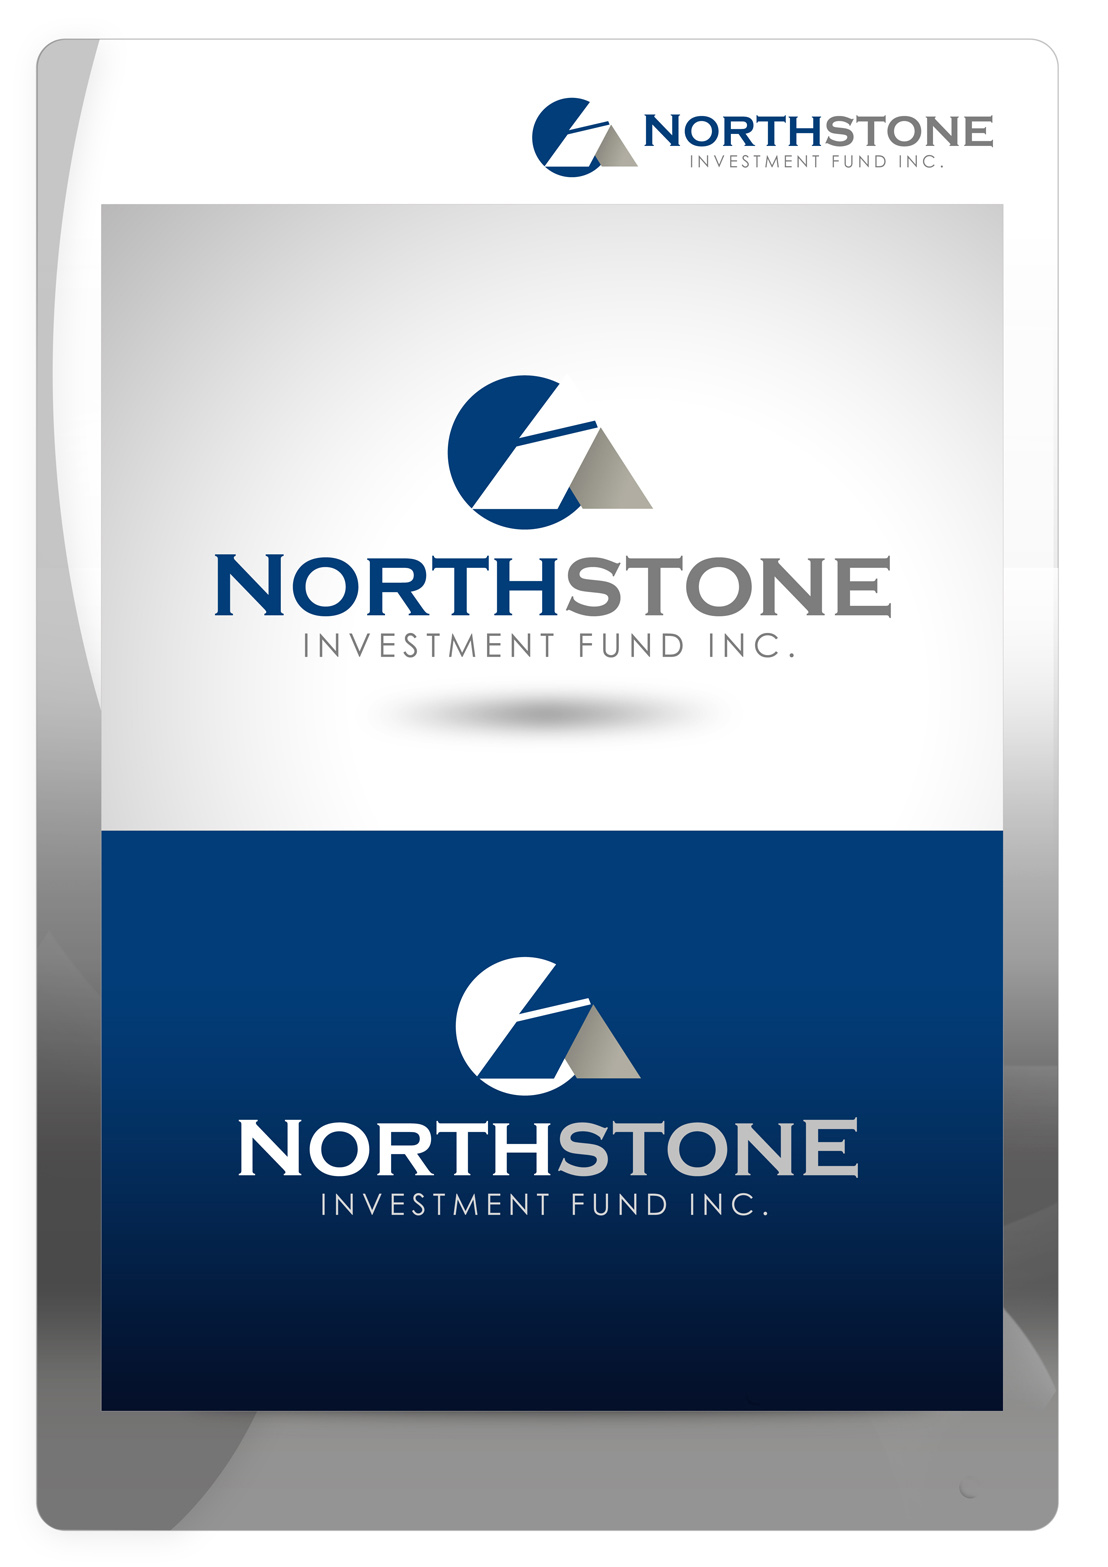 Logo Design by Mark Anthony Moreto Jordan - Entry No. 210 in the Logo Design Contest Unique Logo Design Wanted for NorthStone Investment Fund Inc.